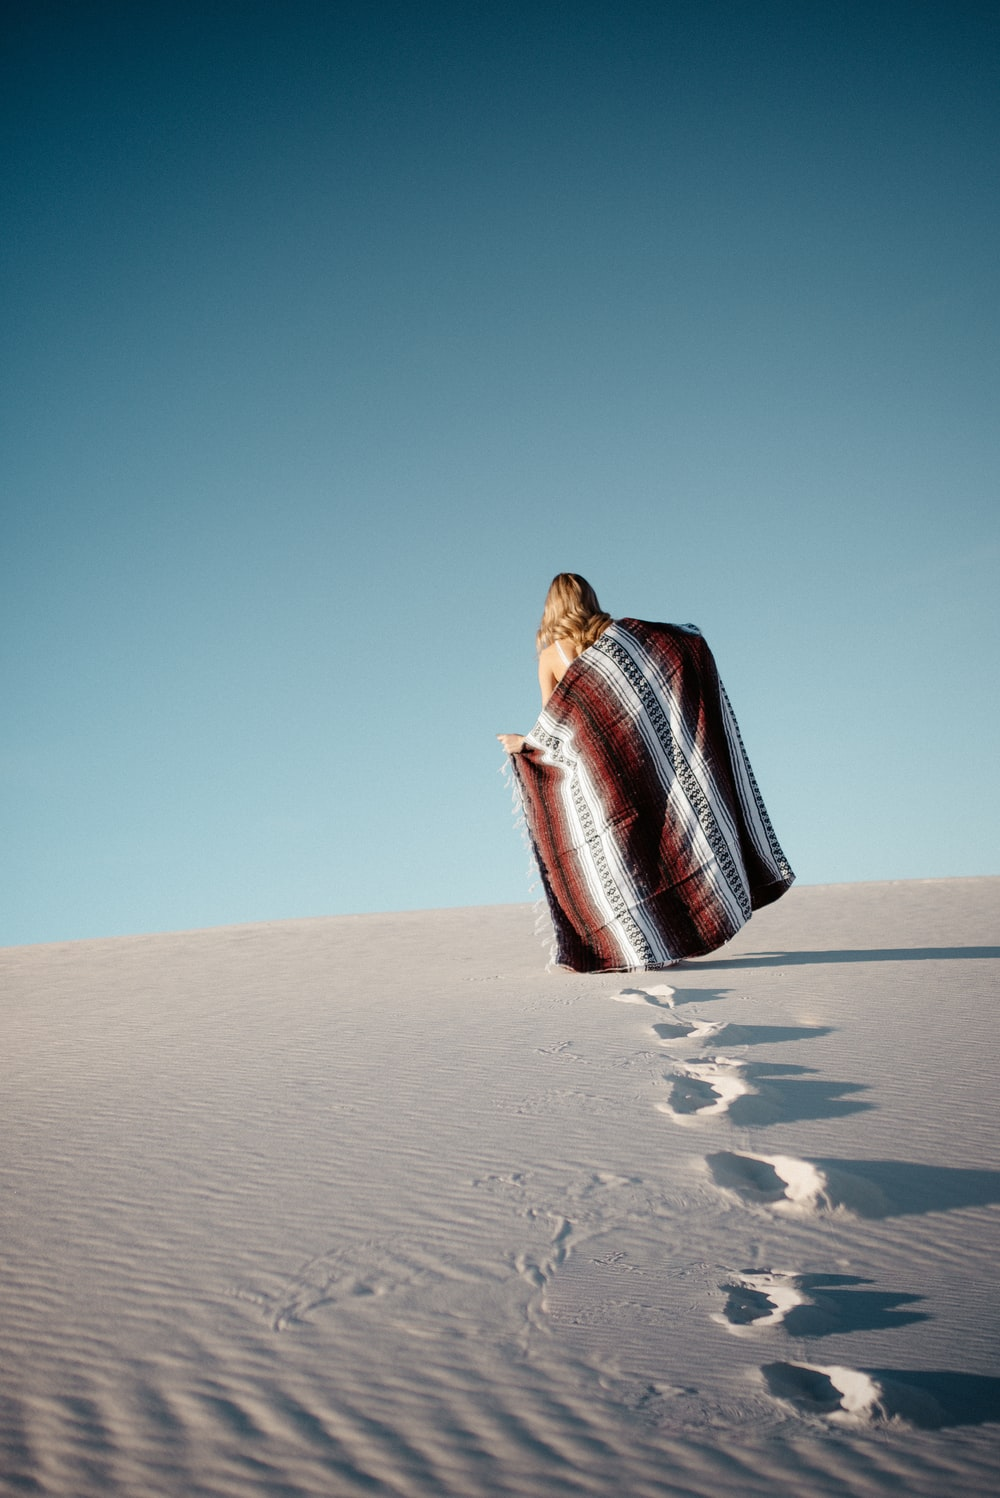 woman walks at the desert with scarf